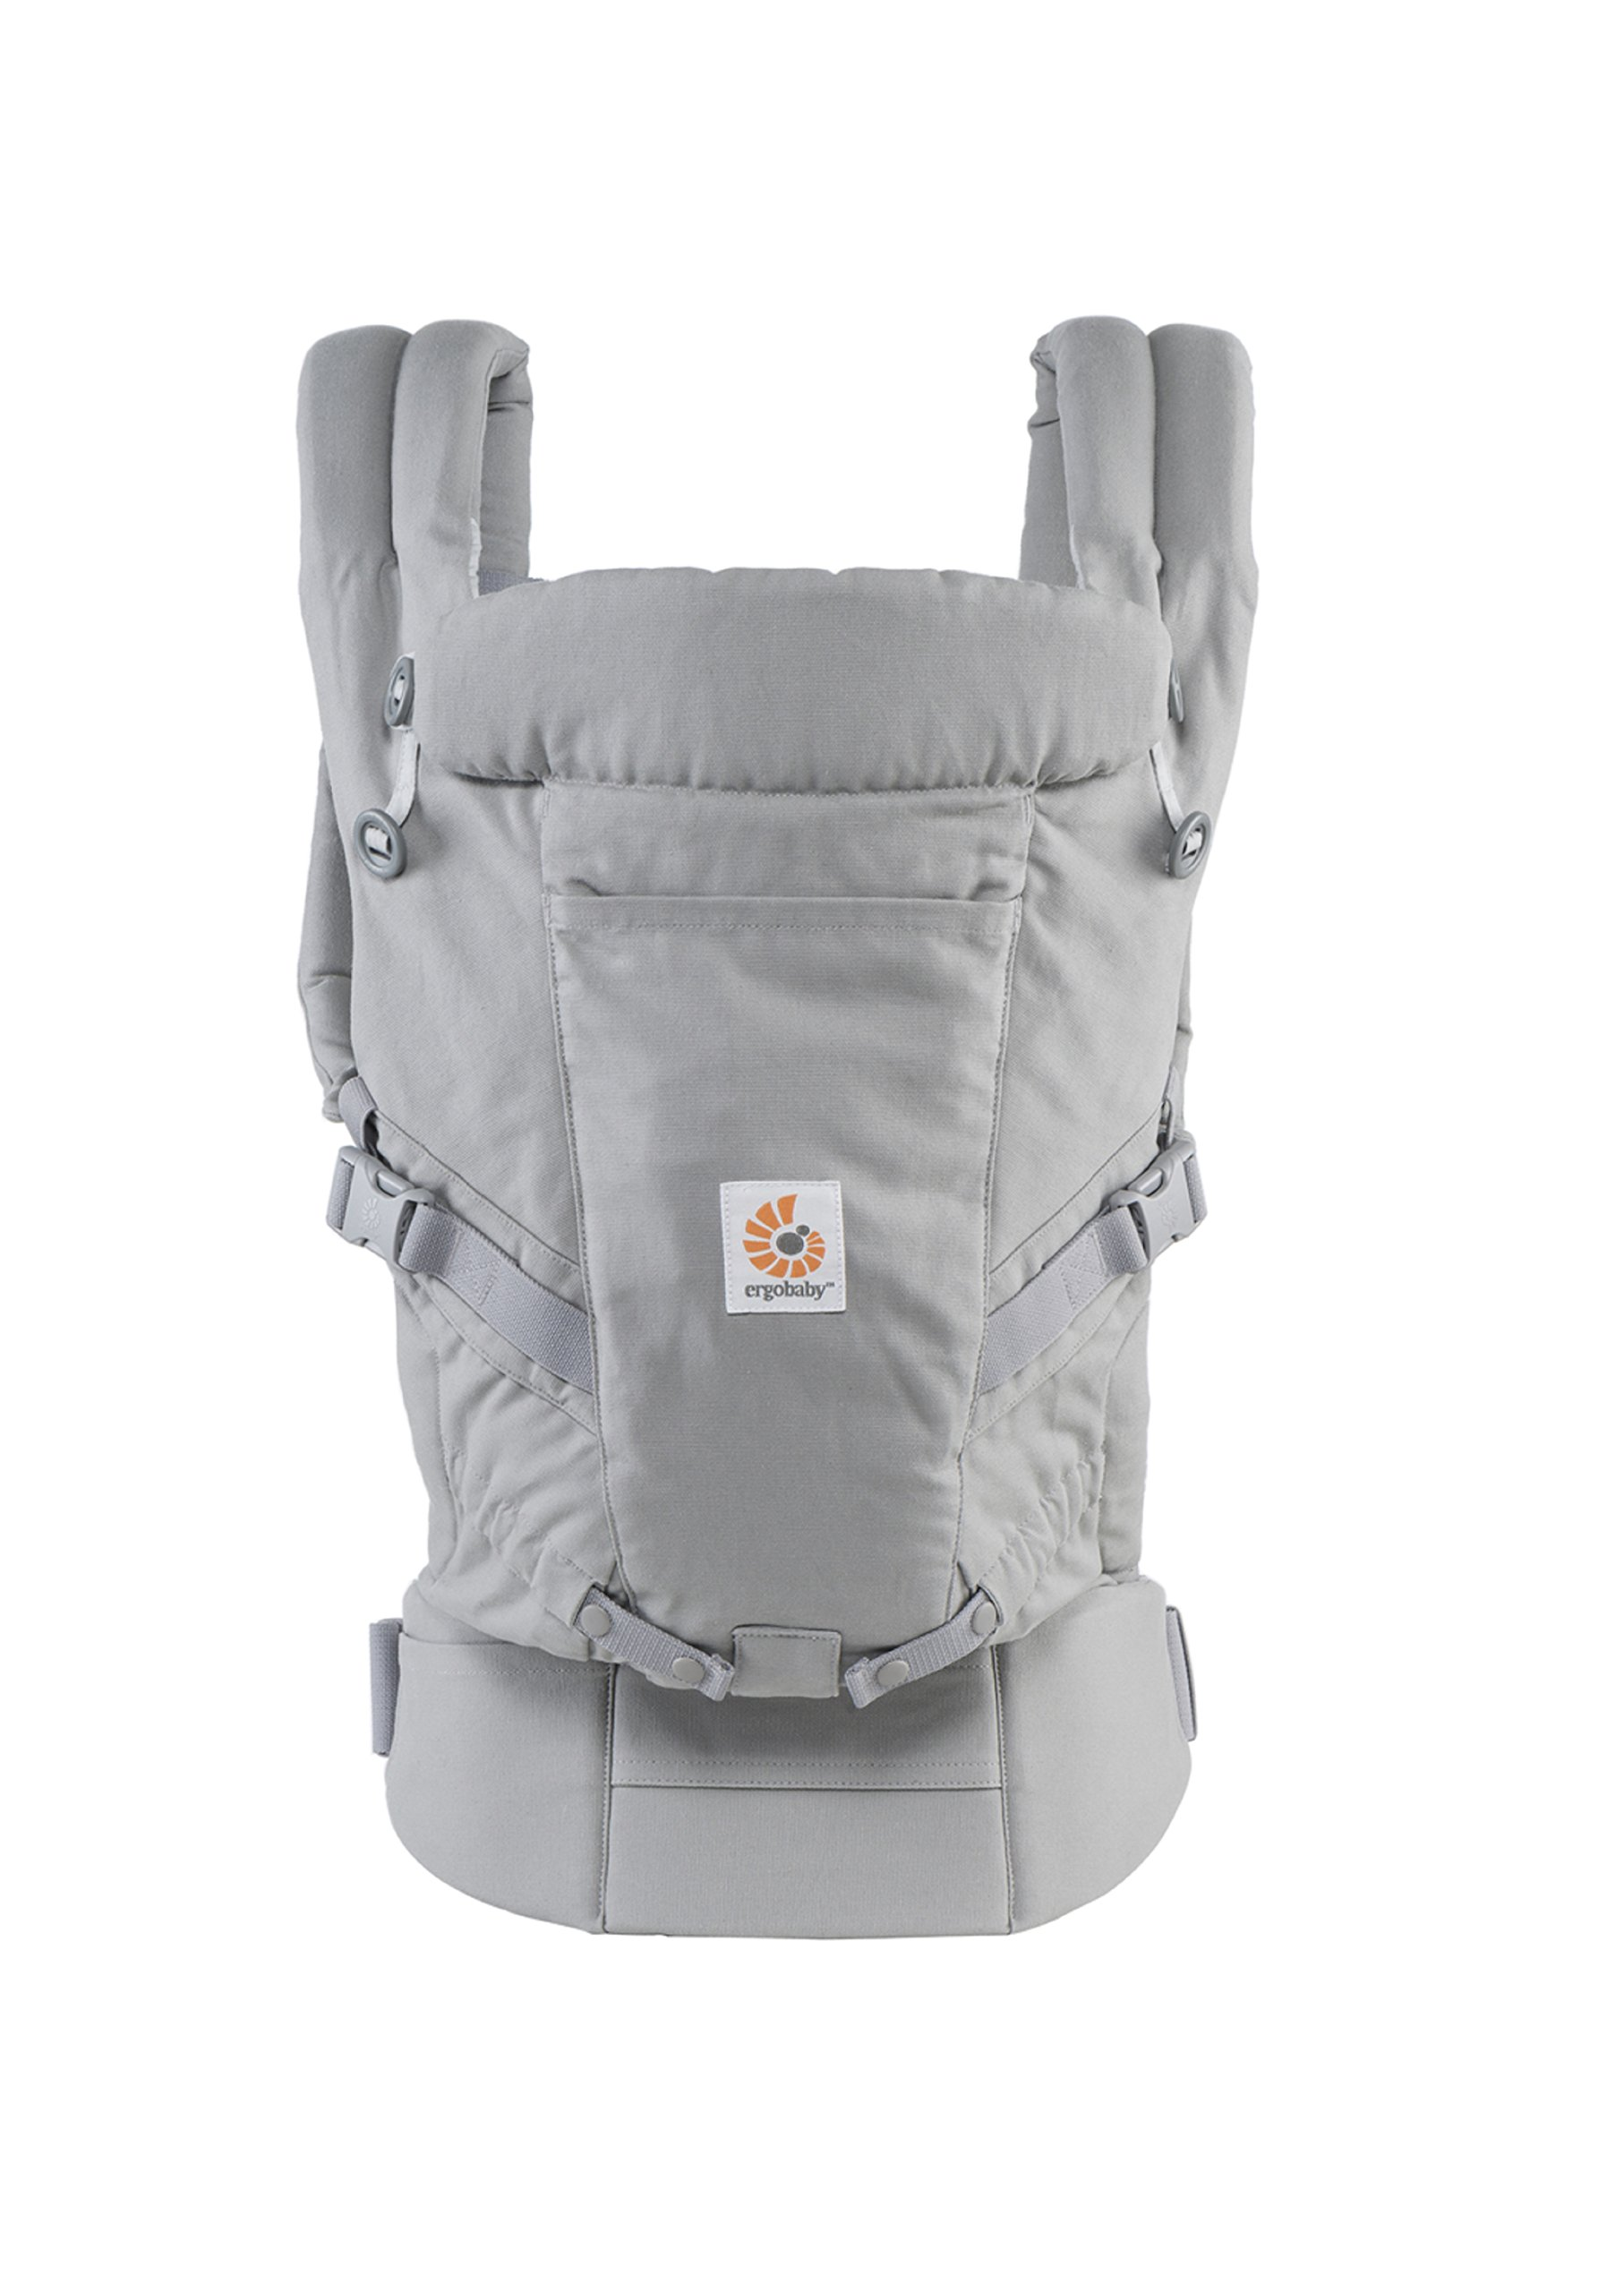 ErgoBaby Adapt Baby Carrier Grey Ergobaby Adapt to Every Baby Easy. Adjustable. Newborn to toddler. 4